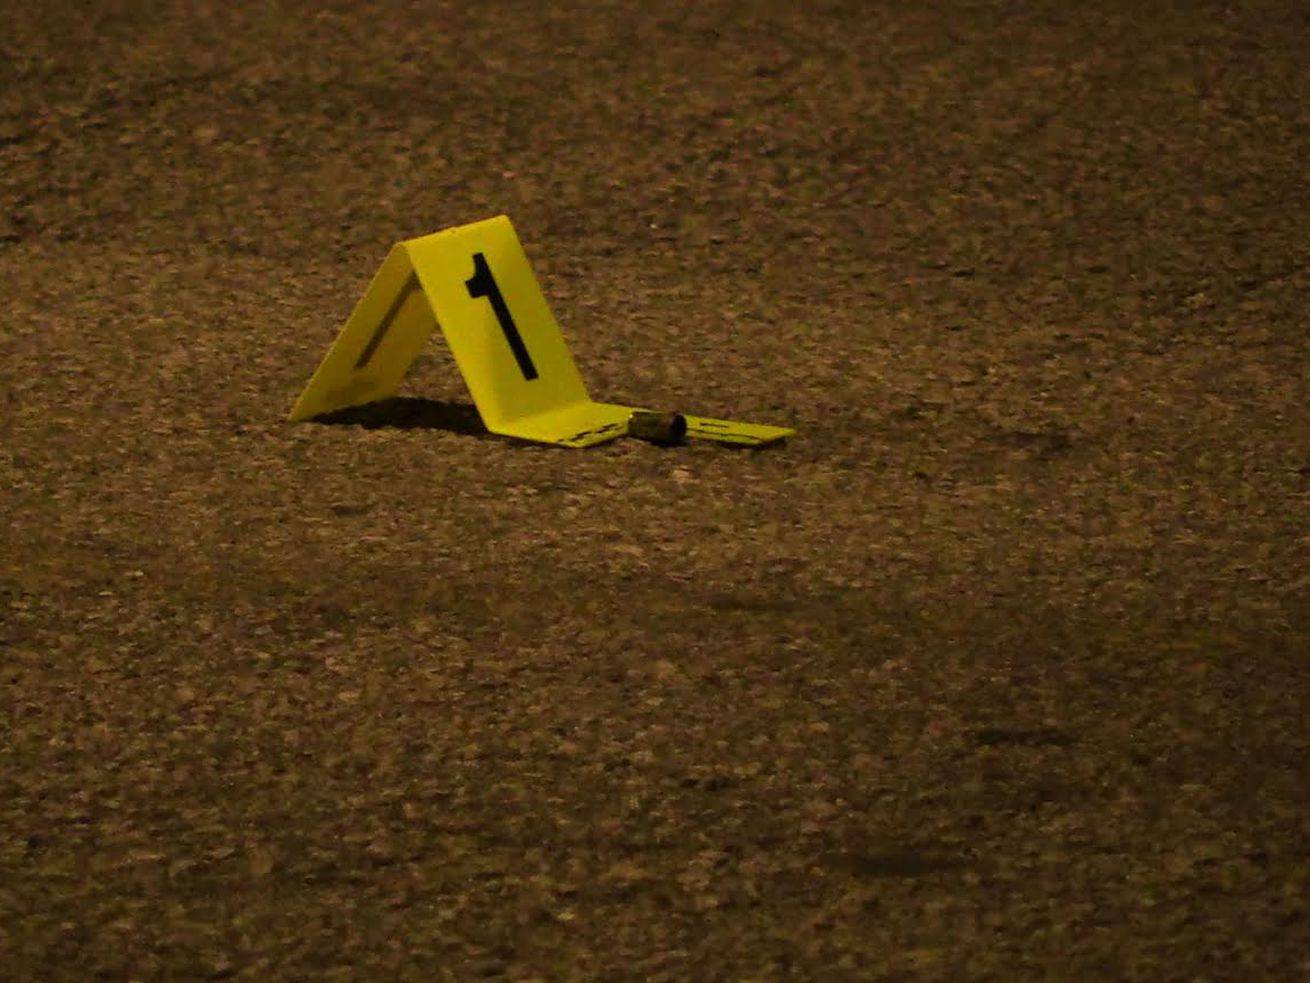 3 shot, including two 14-year-olds, in Lawndale